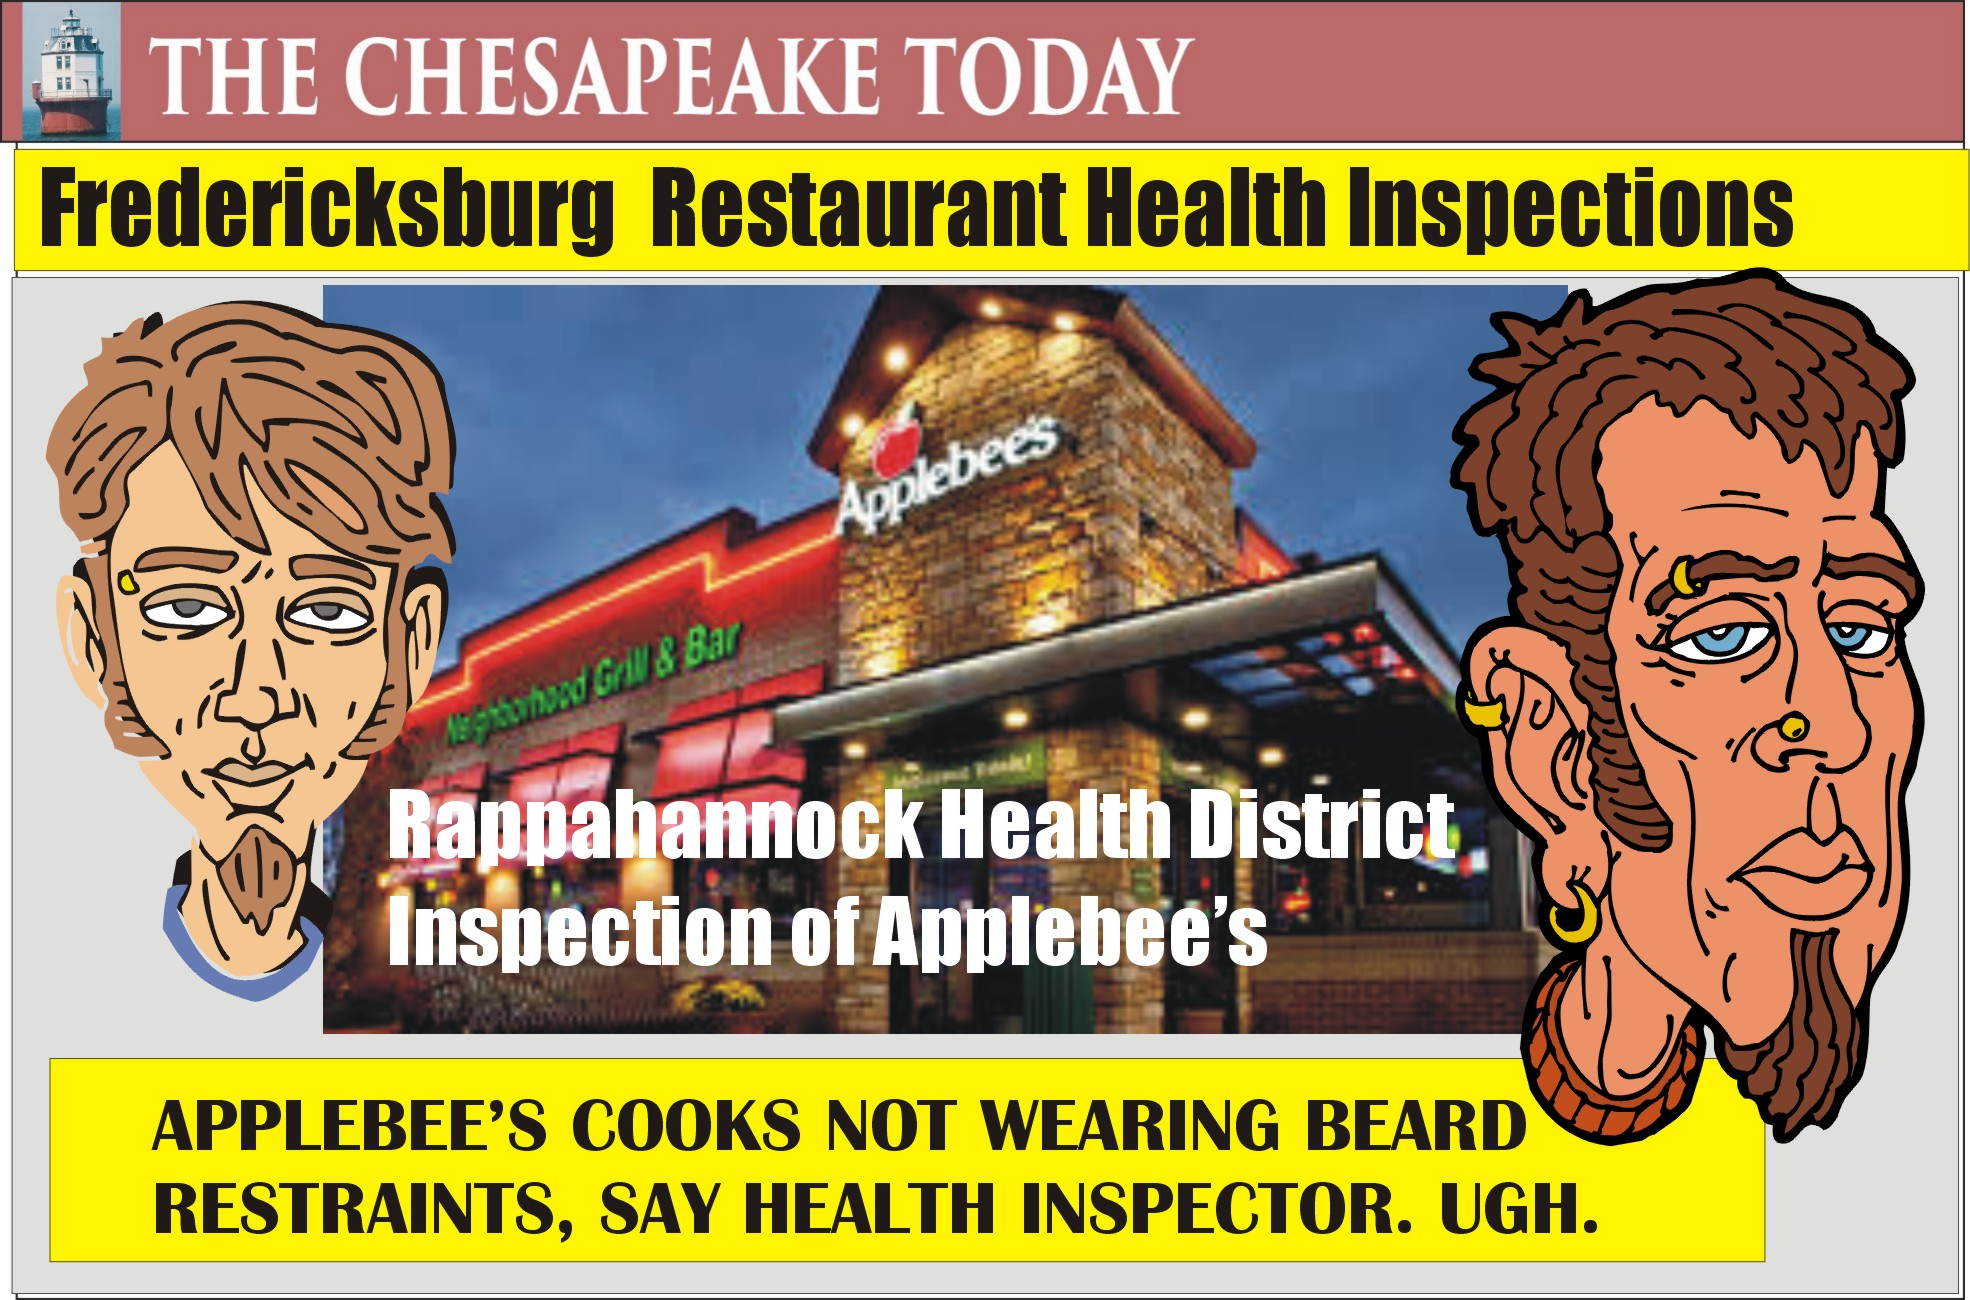 HEALTH INSPECTION: Applebee's found with bearded cooks without beard restraints; ugh.